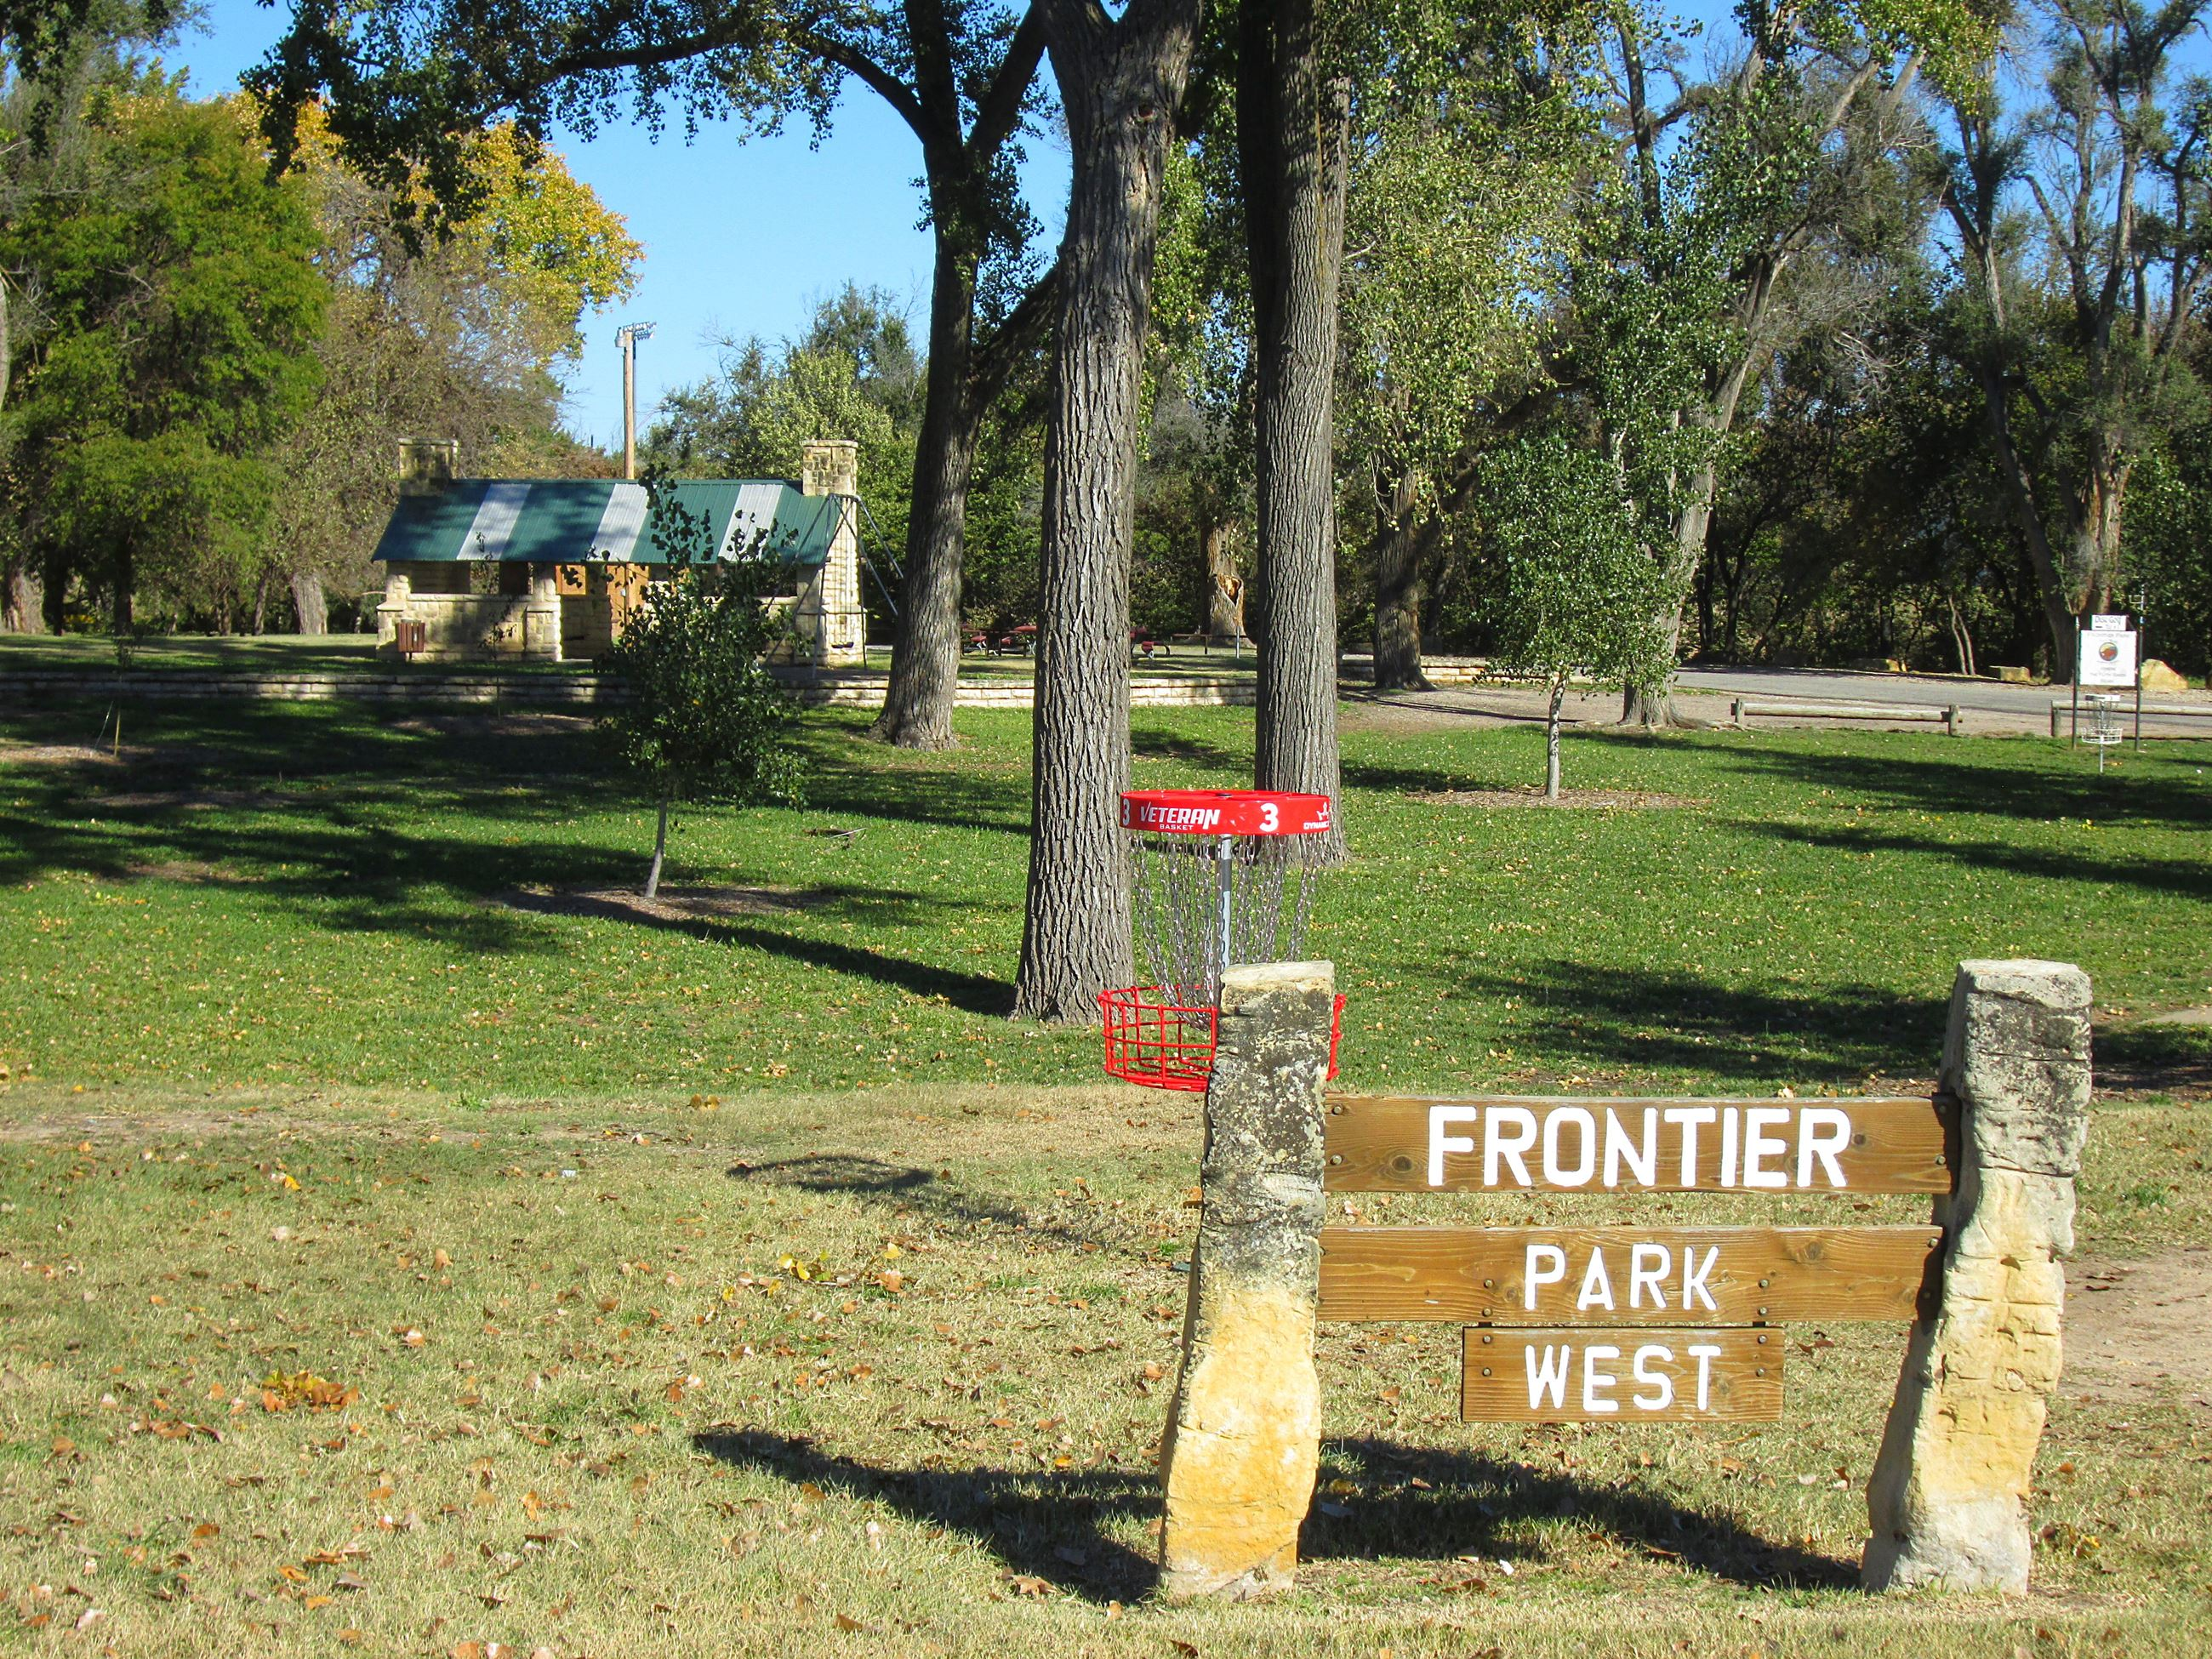 Frontier West park entrance sign